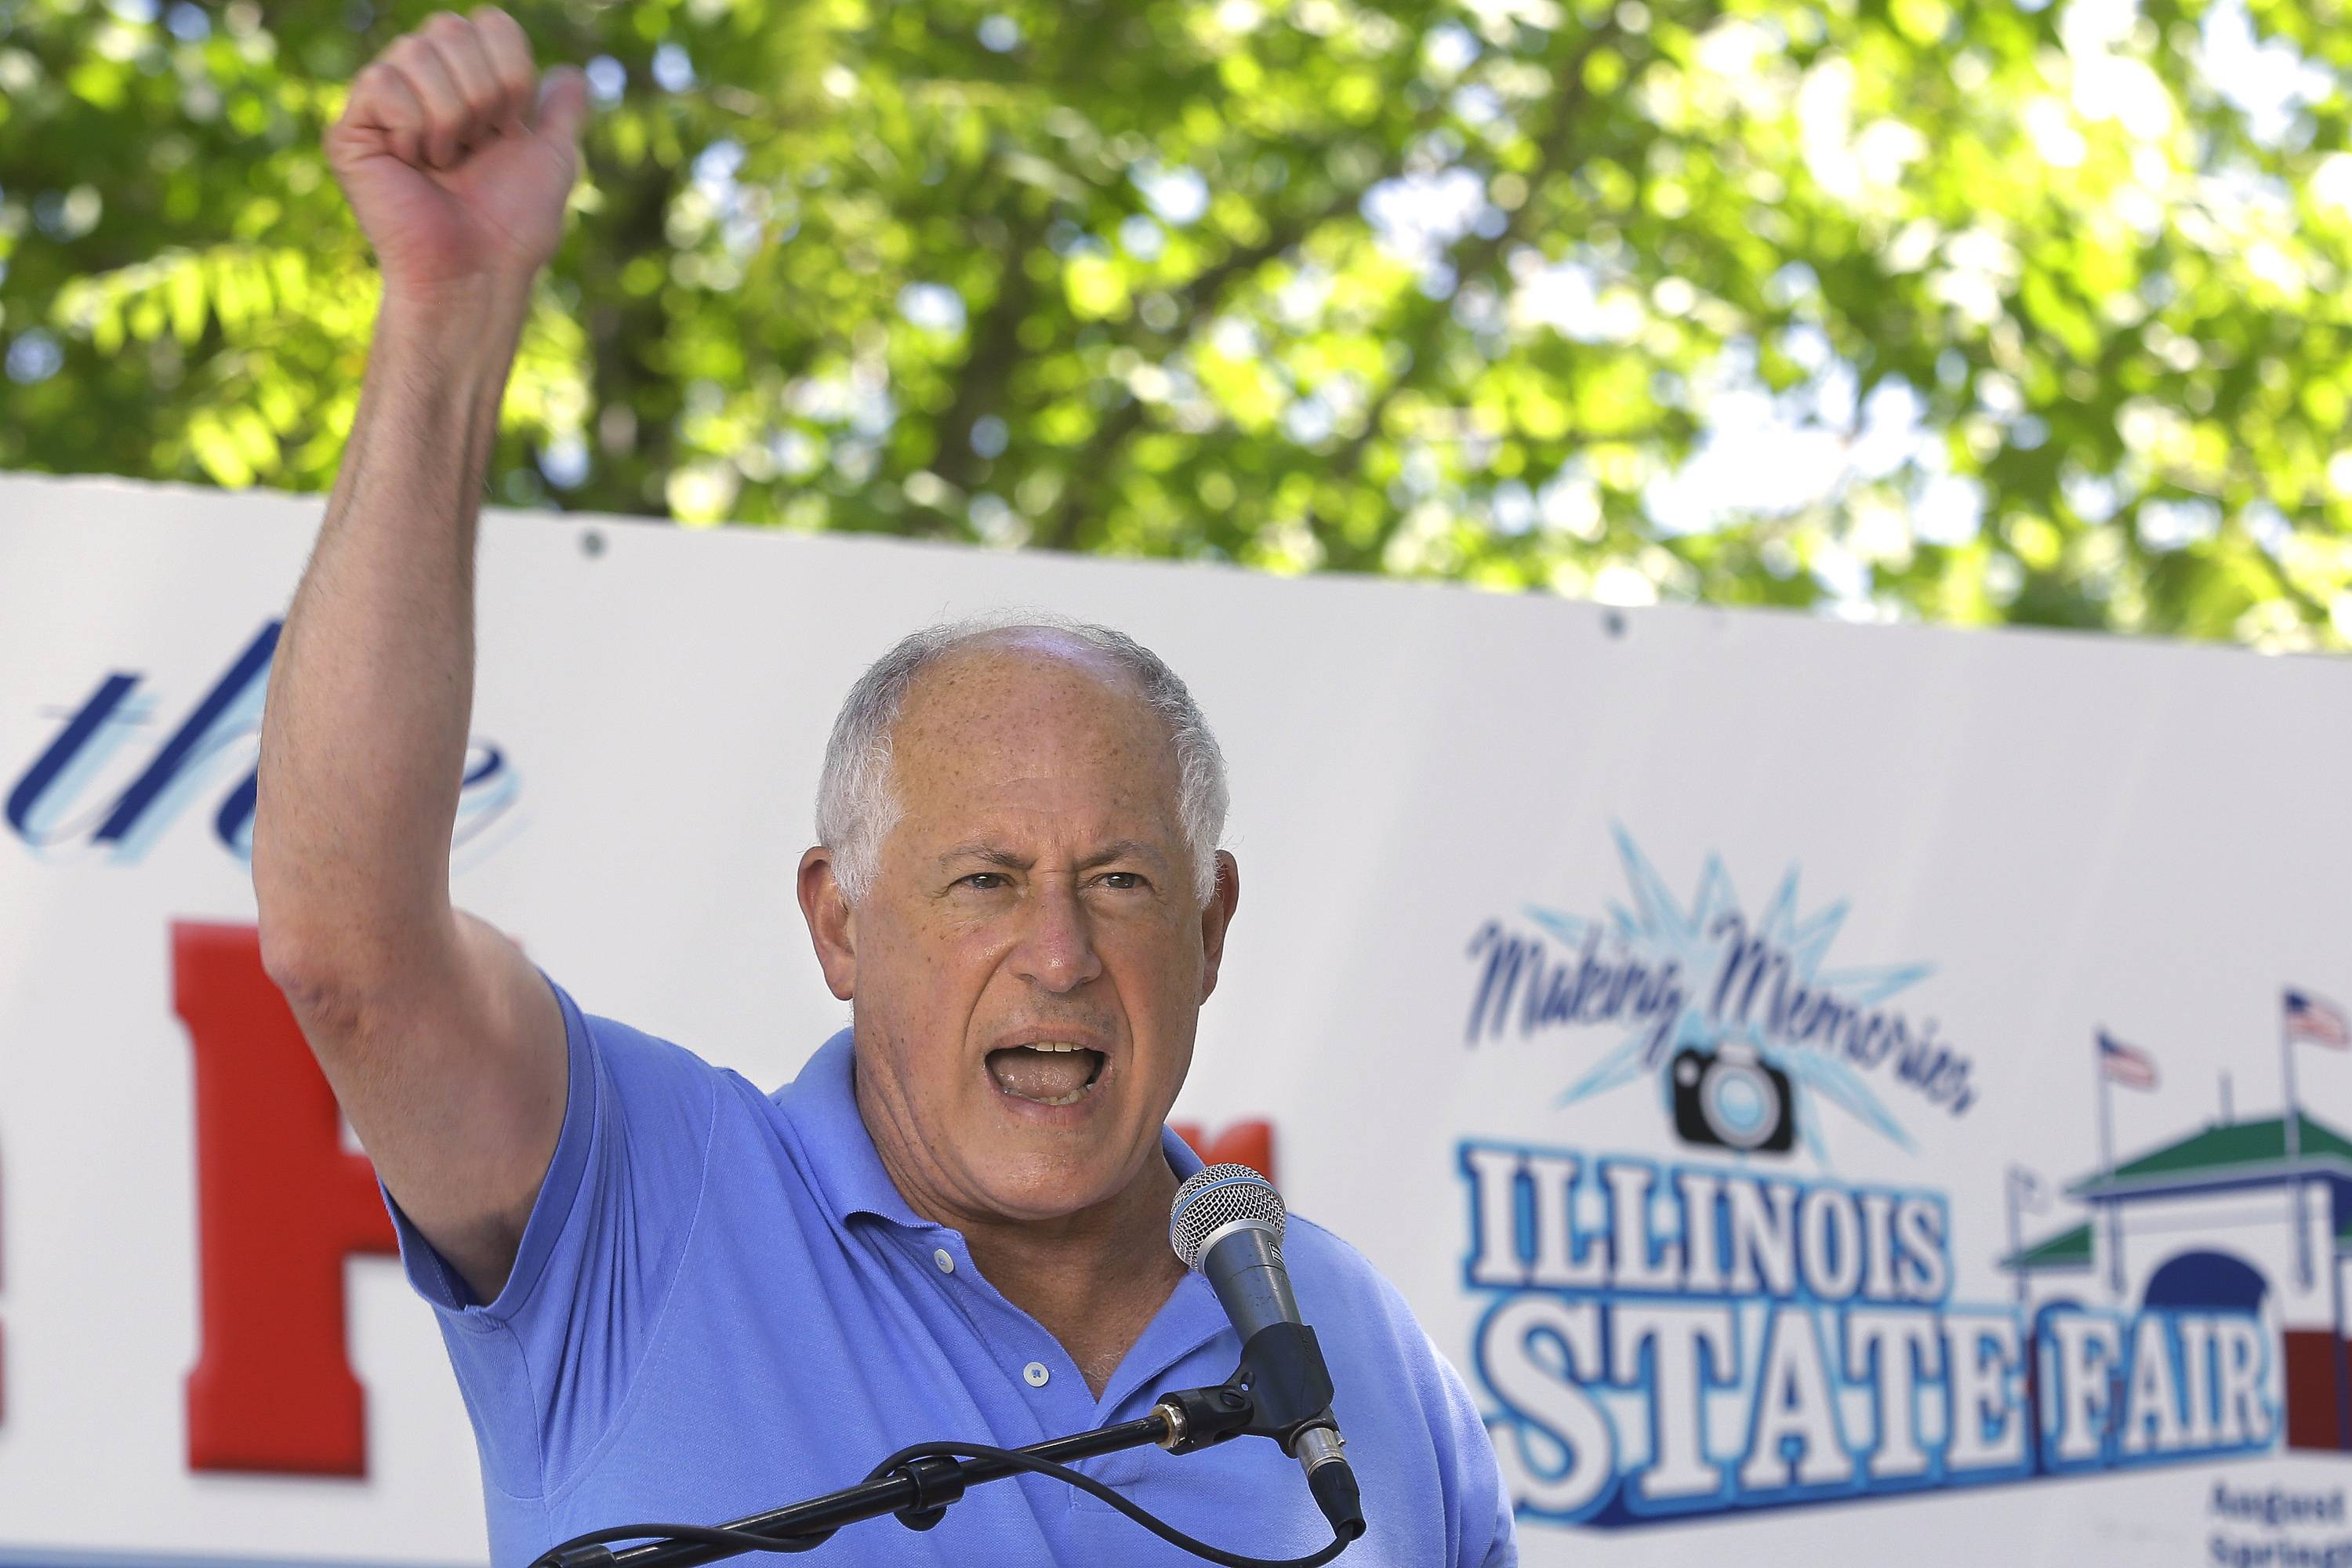 Illinois Gov. Pat Quinn speaks on Governor's Day at the Illinois State Fair, Wednesday in Springfield.